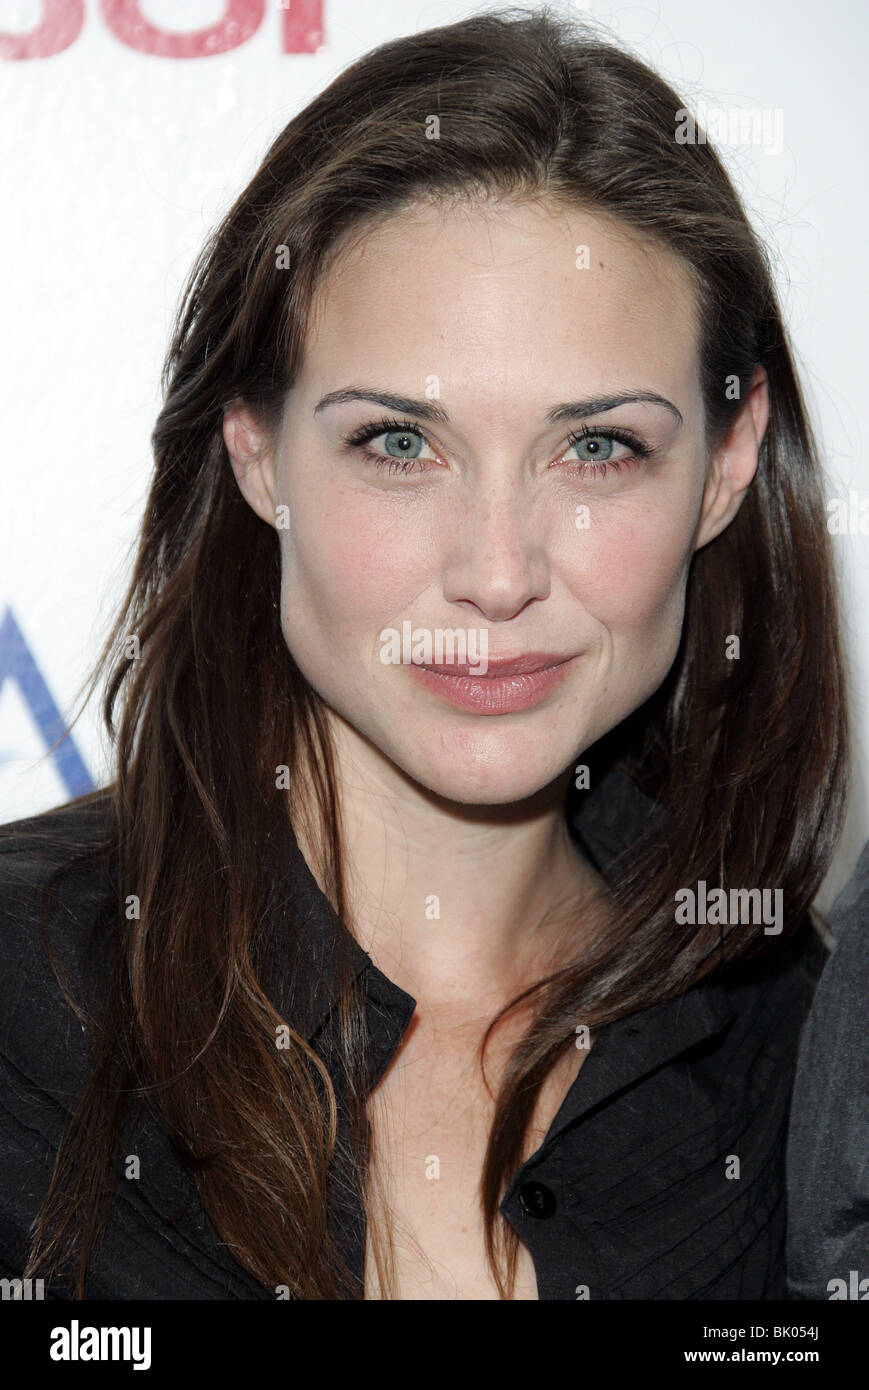 Snapchat Claire Forlani nude (28 photos), Ass, Paparazzi, Selfie, underwear 2017